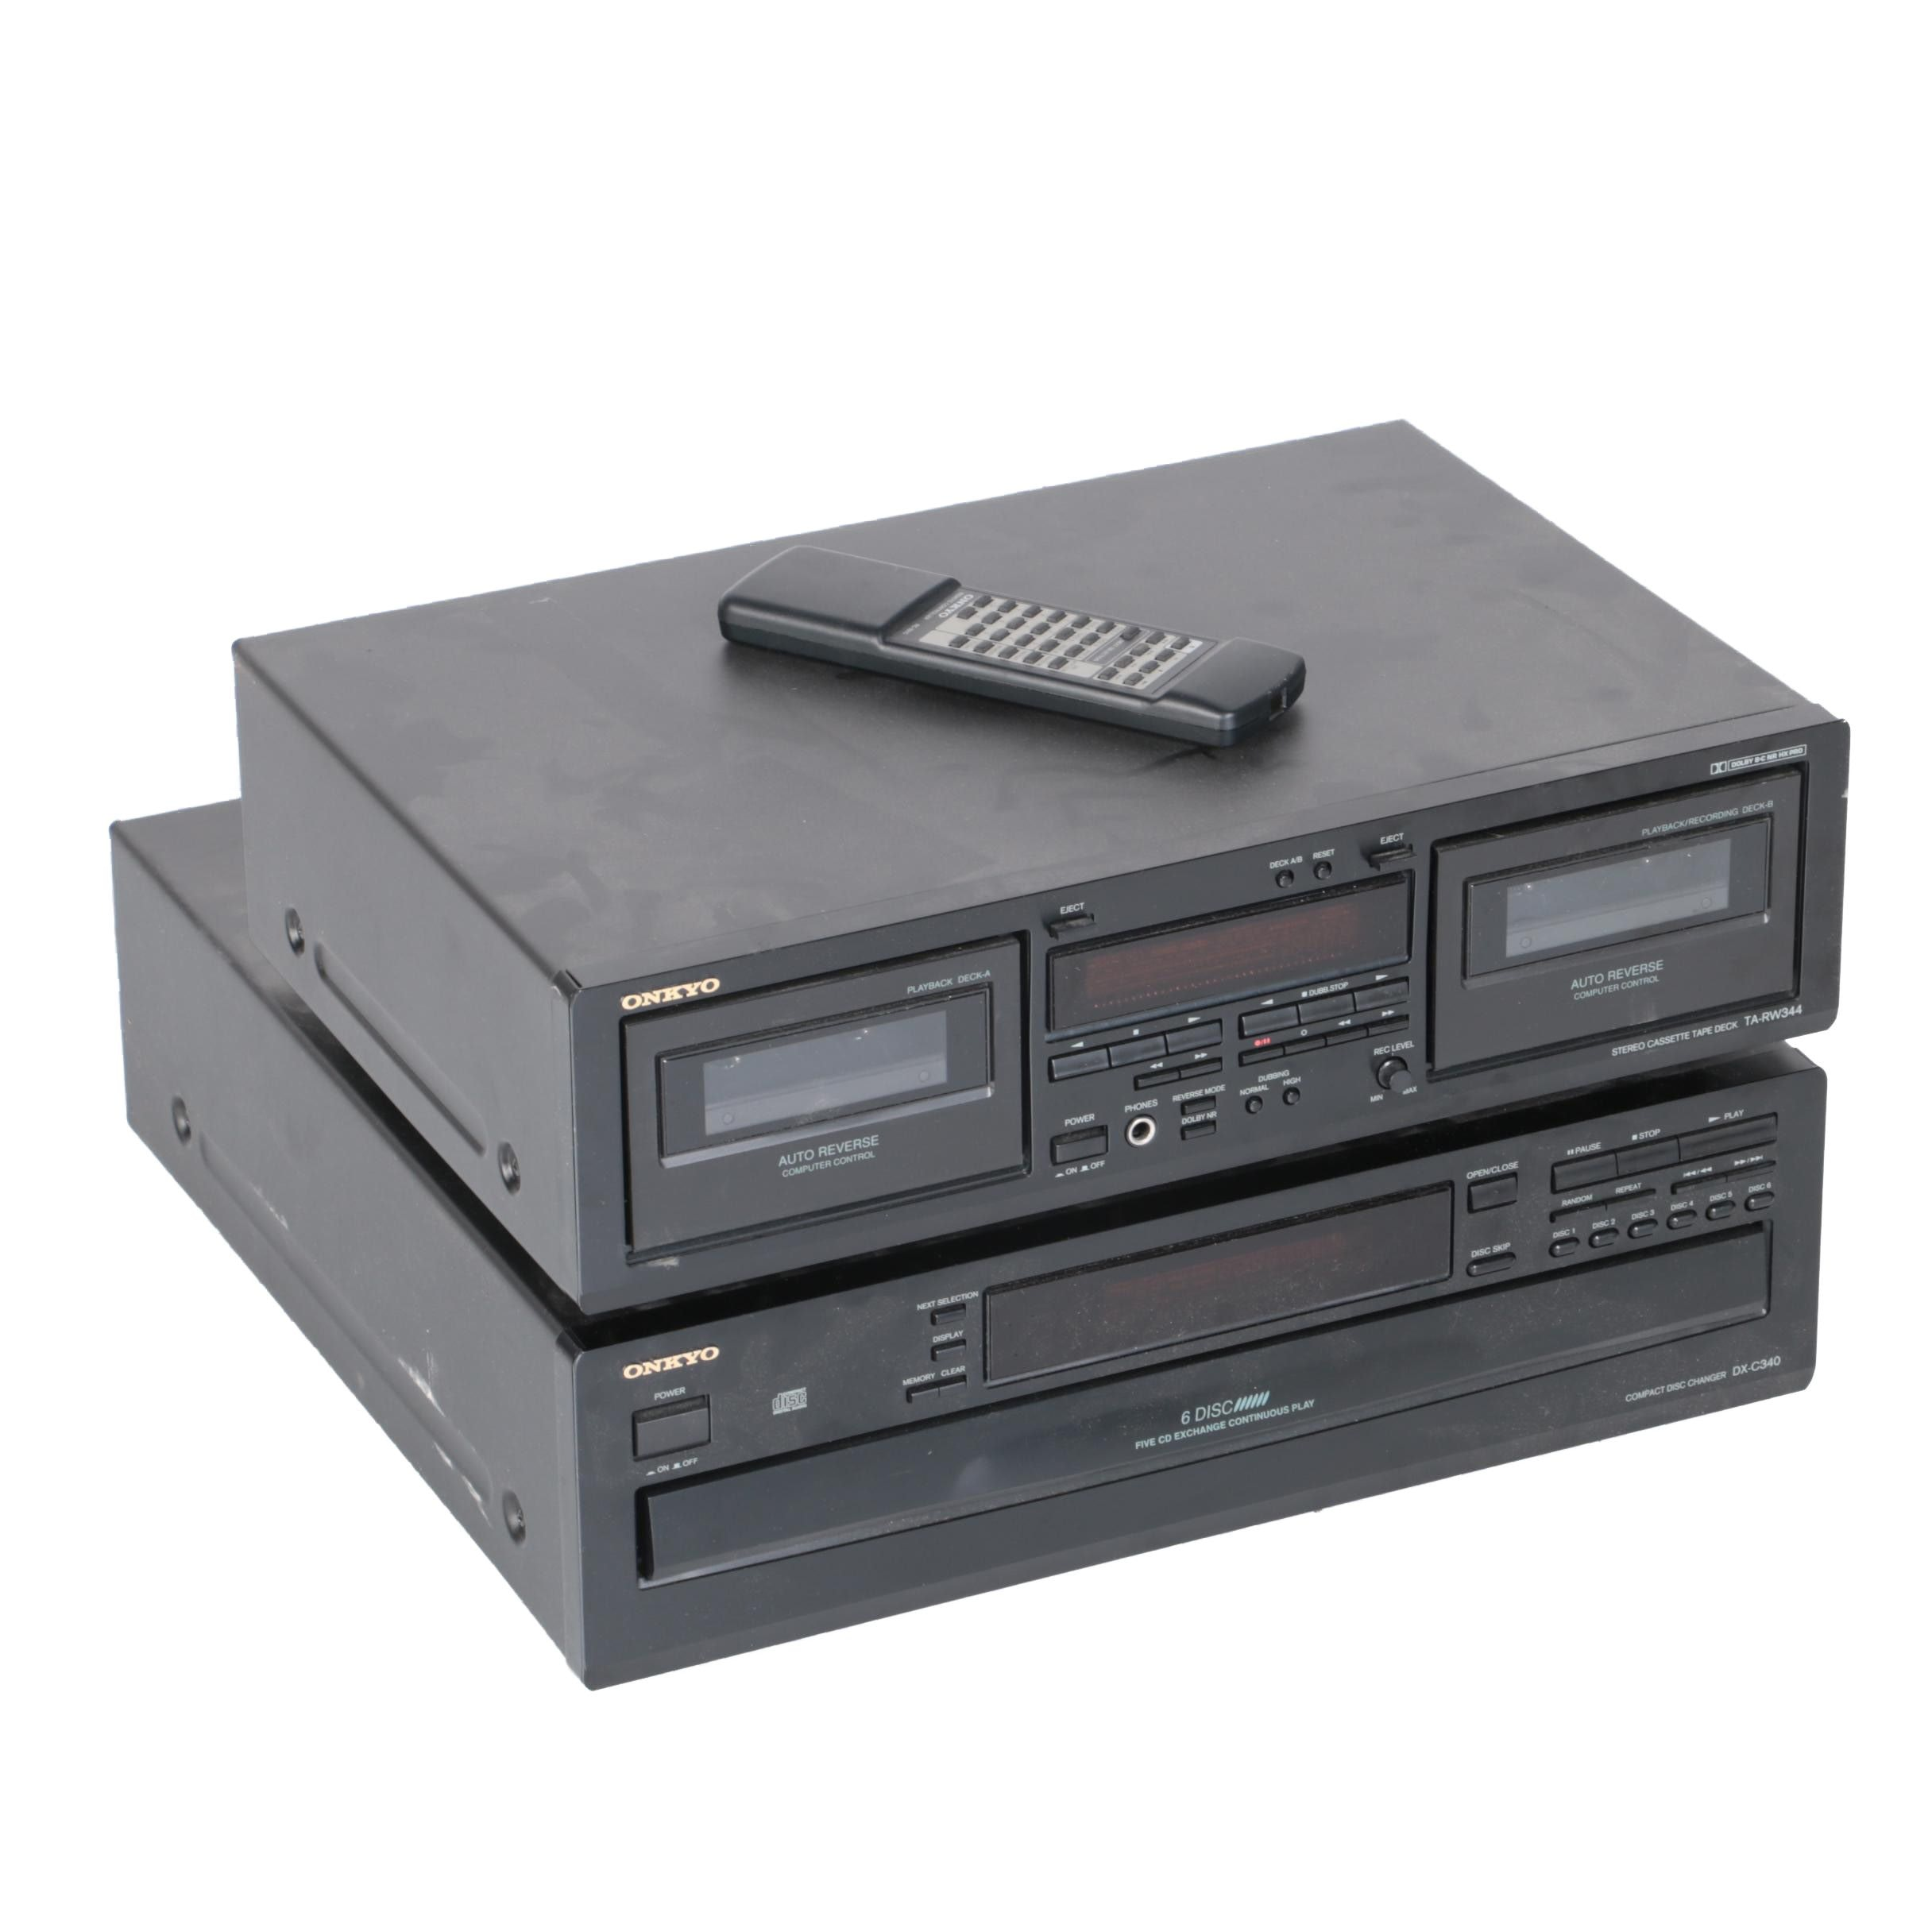 Onkyo Cassette Tape Deck and Six-Disc CD Changer